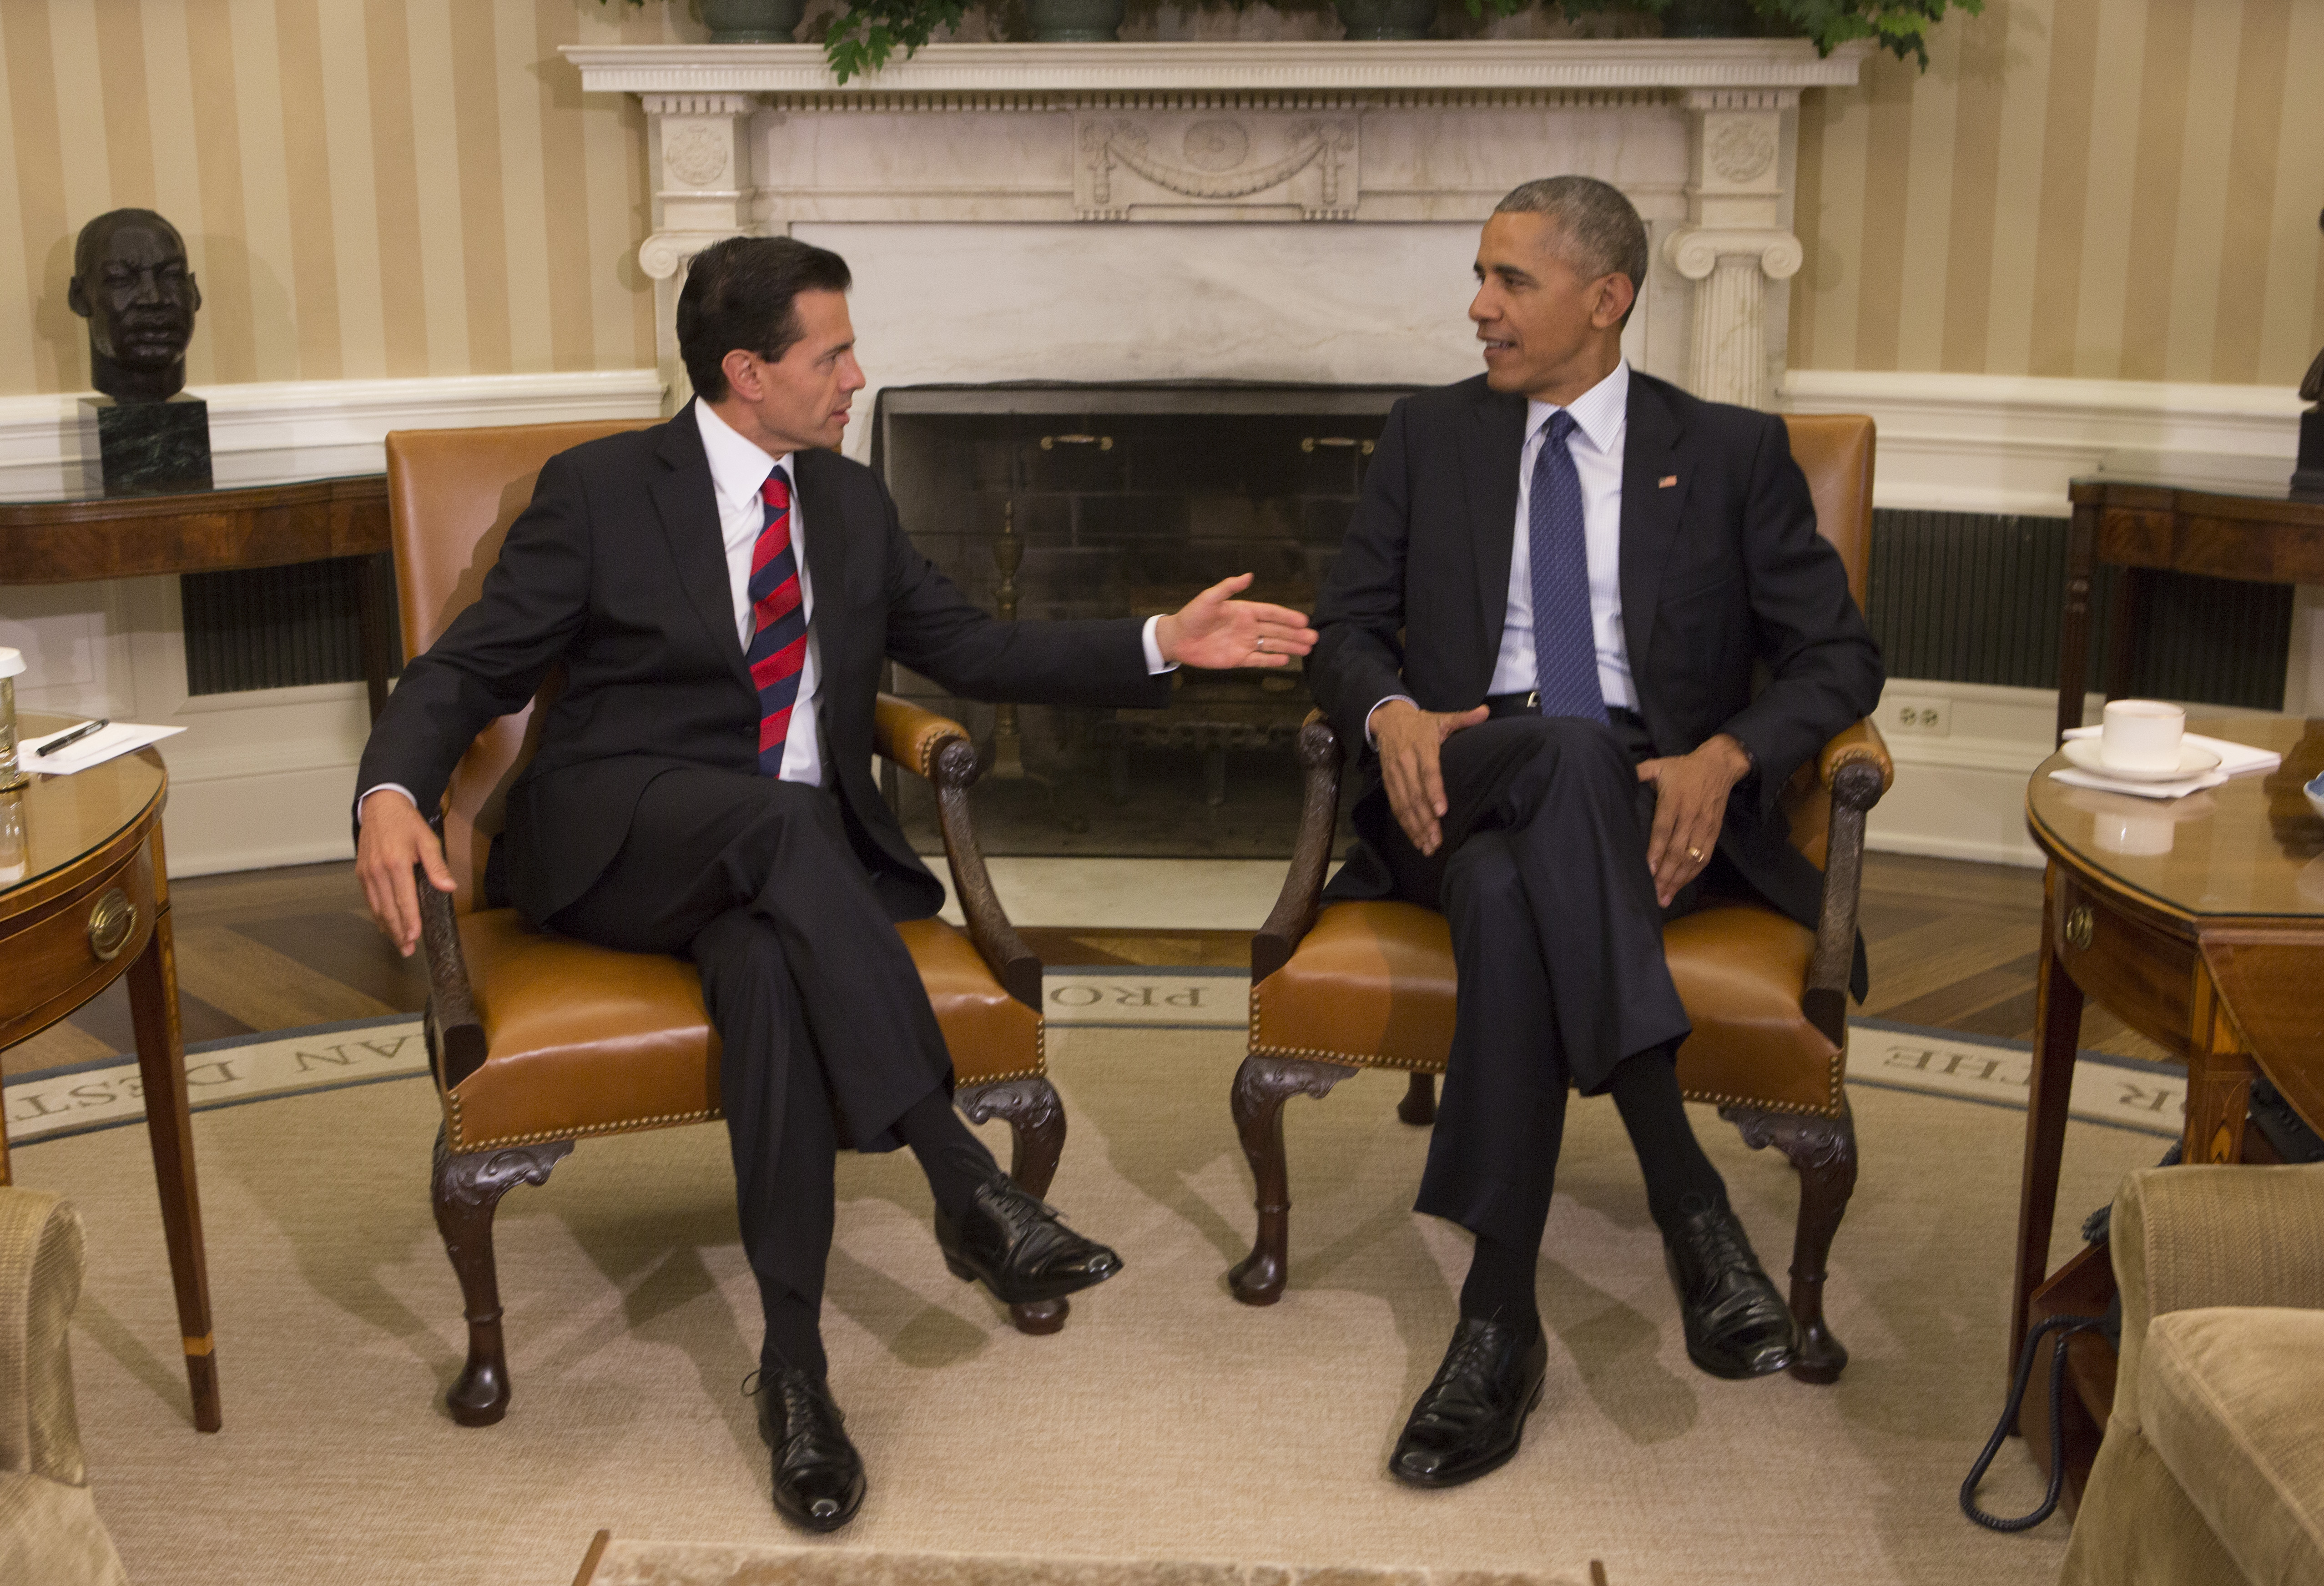 U.S. President Barack Obama (R) meets with President Enrique Pena Nieto of Mexico at the White House on July 22, 2016 in Washington, D.C.